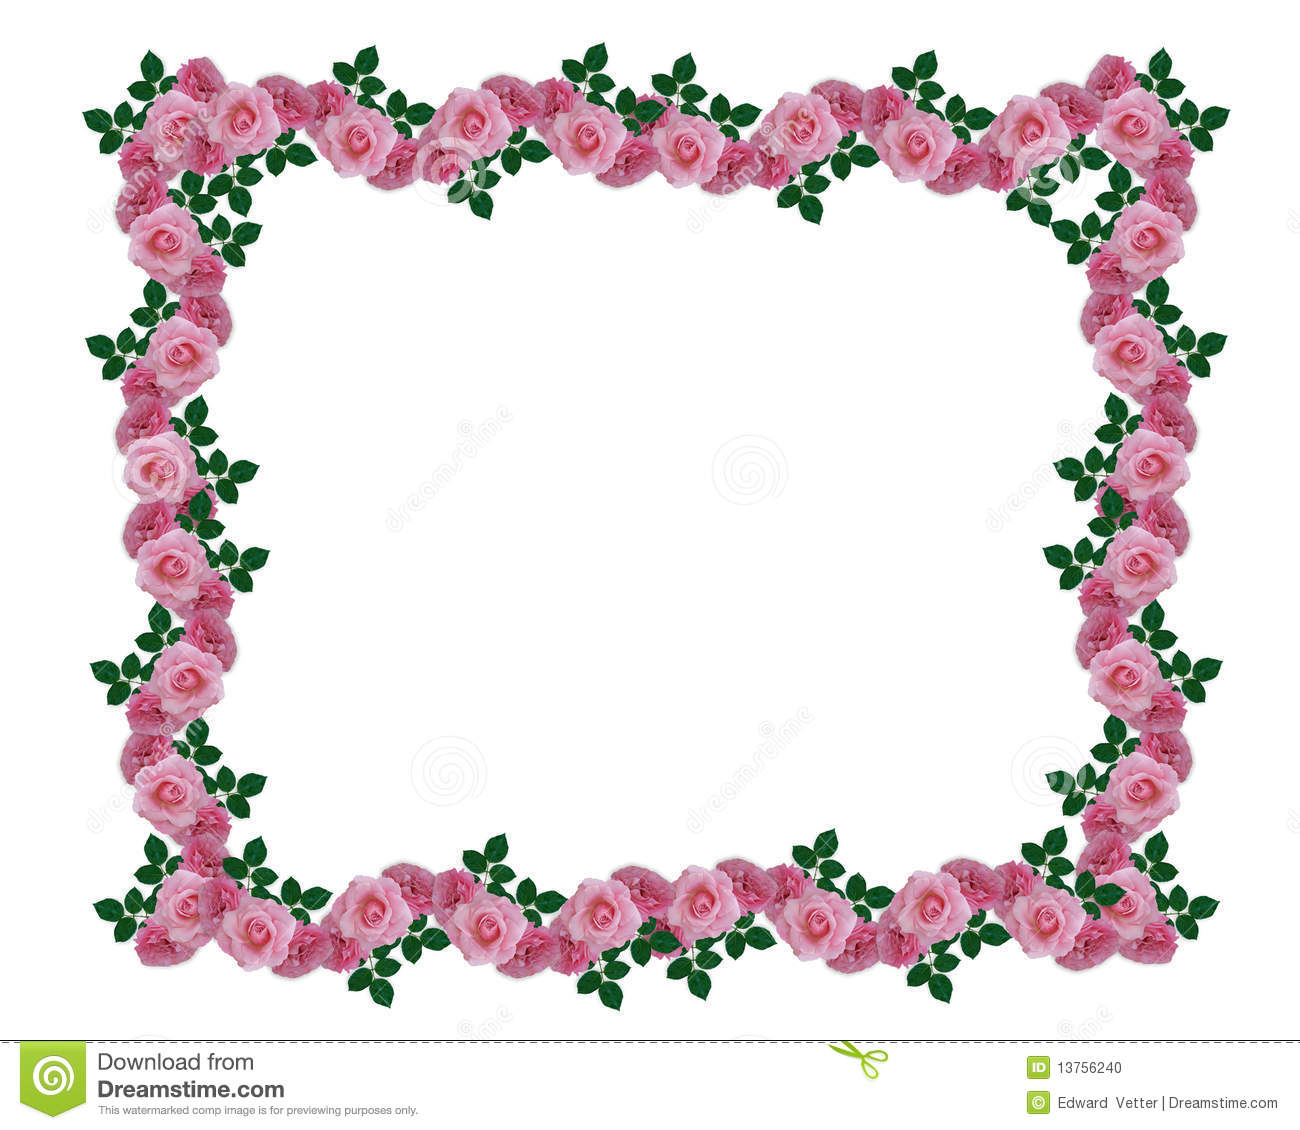 Image And Illustration Composition Of Pink Roses Garland For Wedding